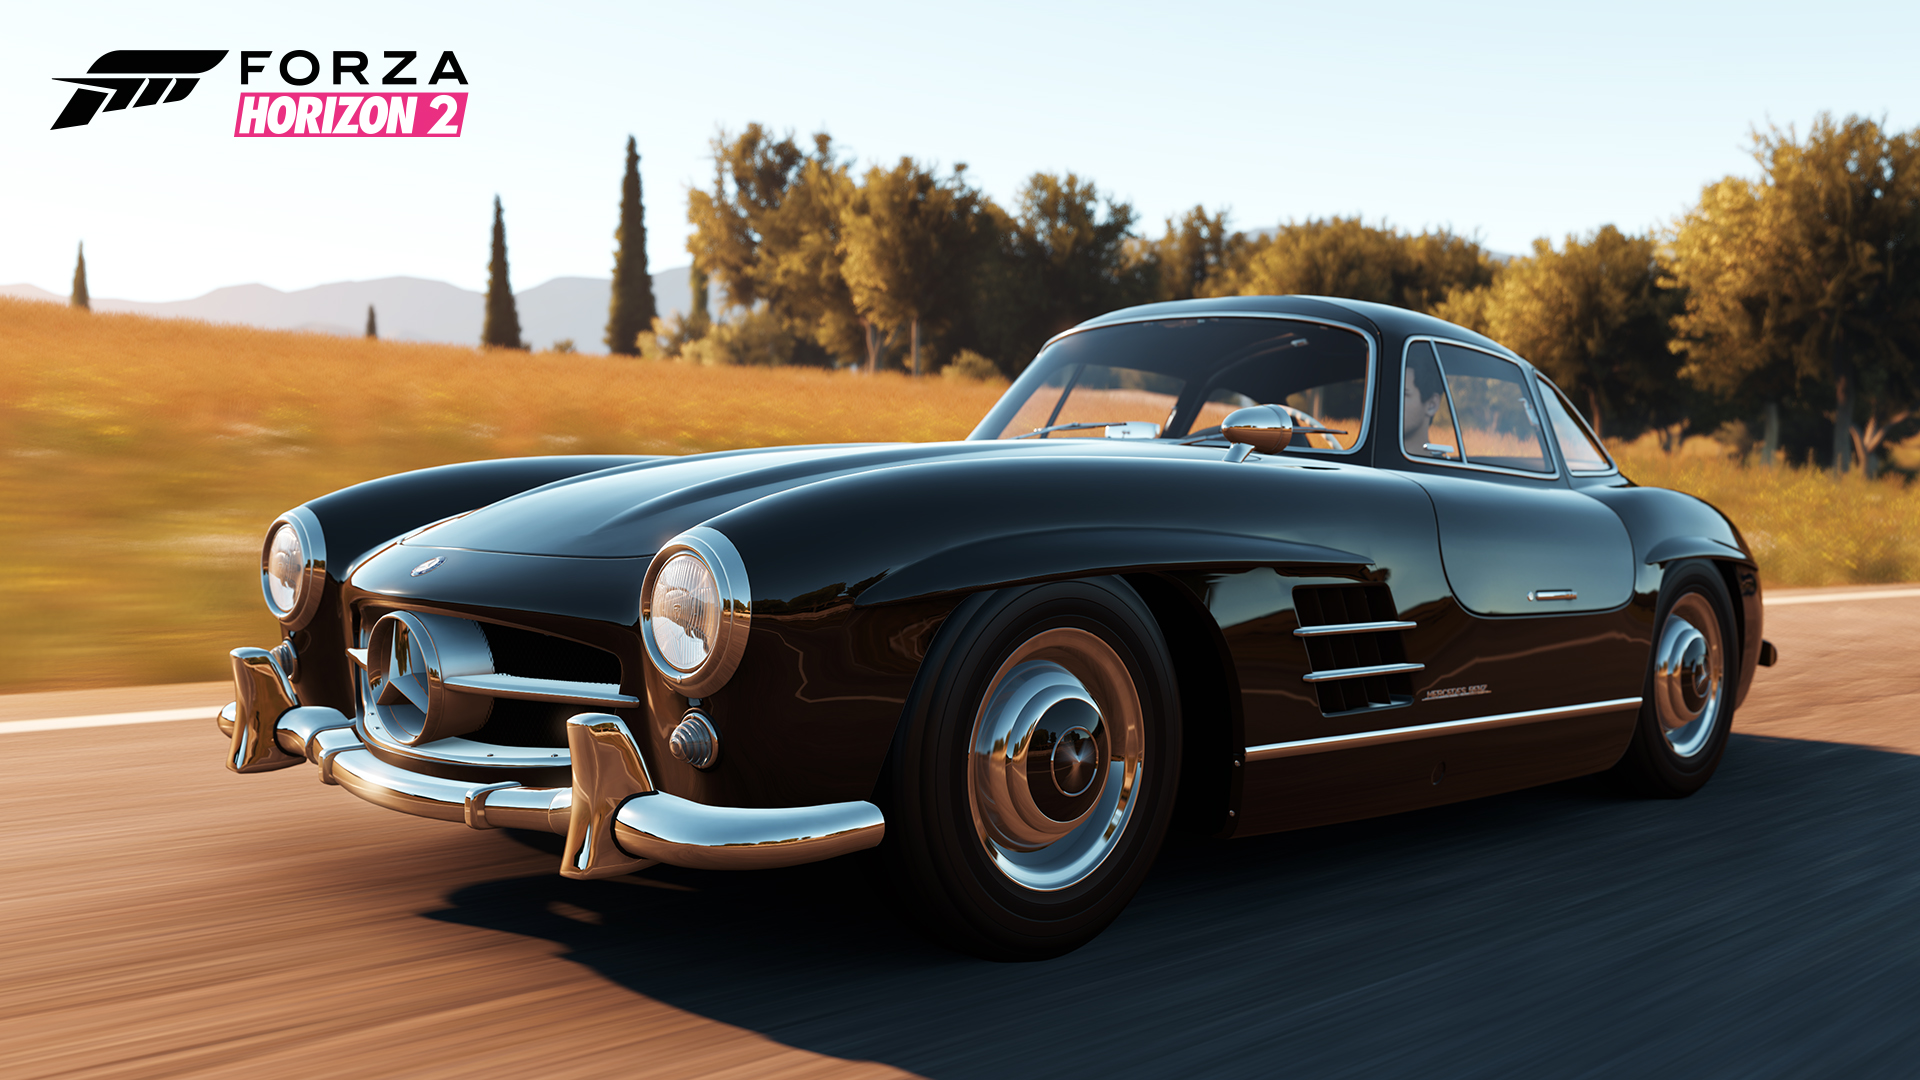 More Forza Horizon 2 Cars Revealed